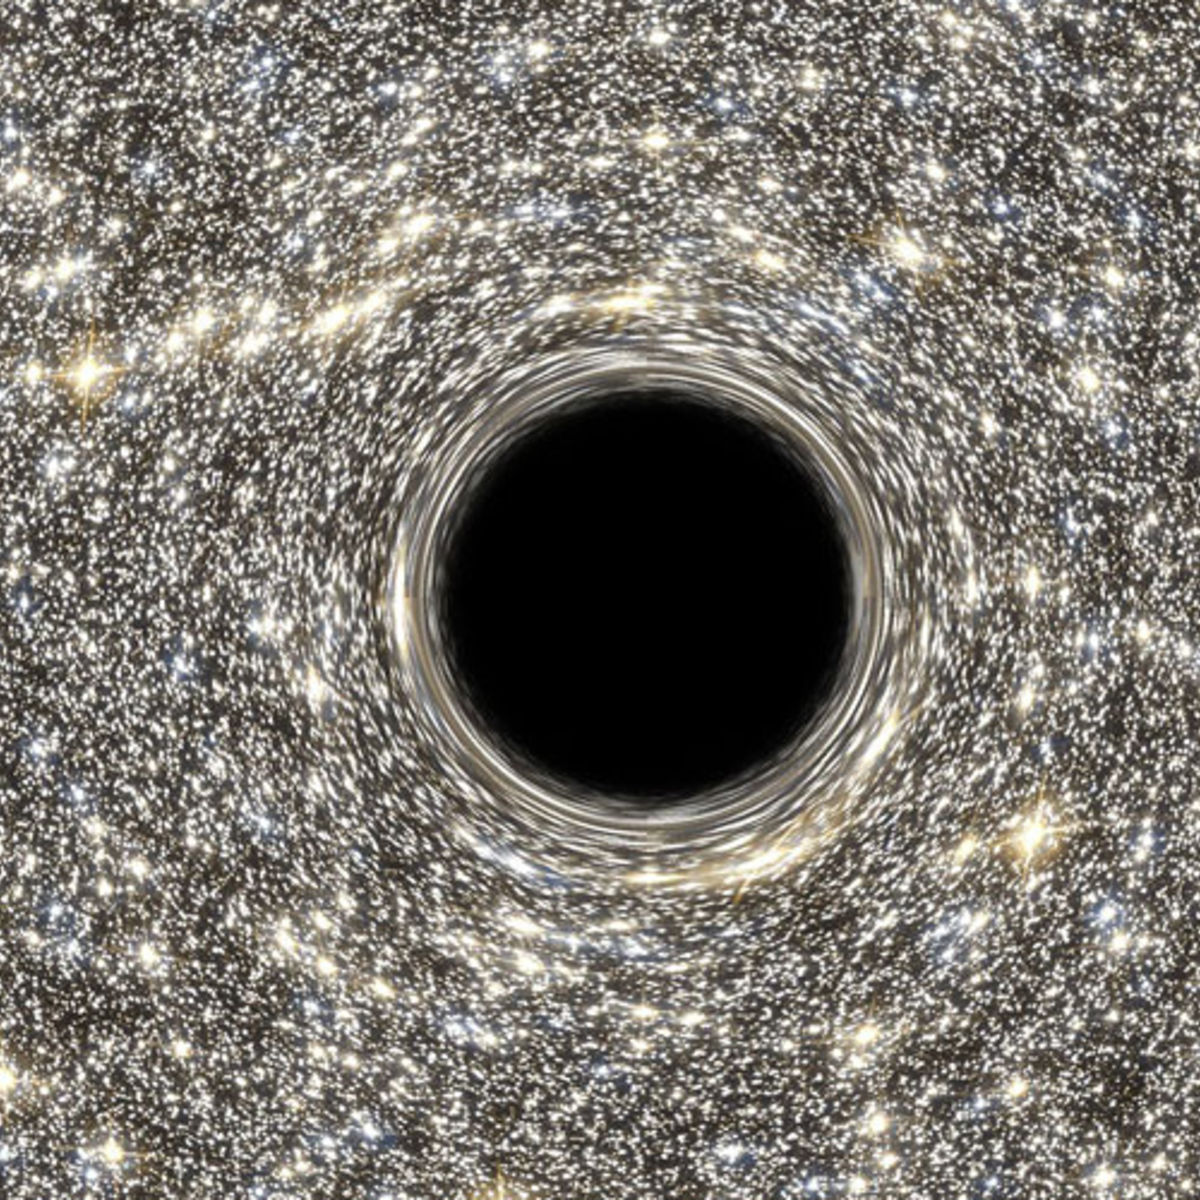 artist concept of a black hole in a starry background